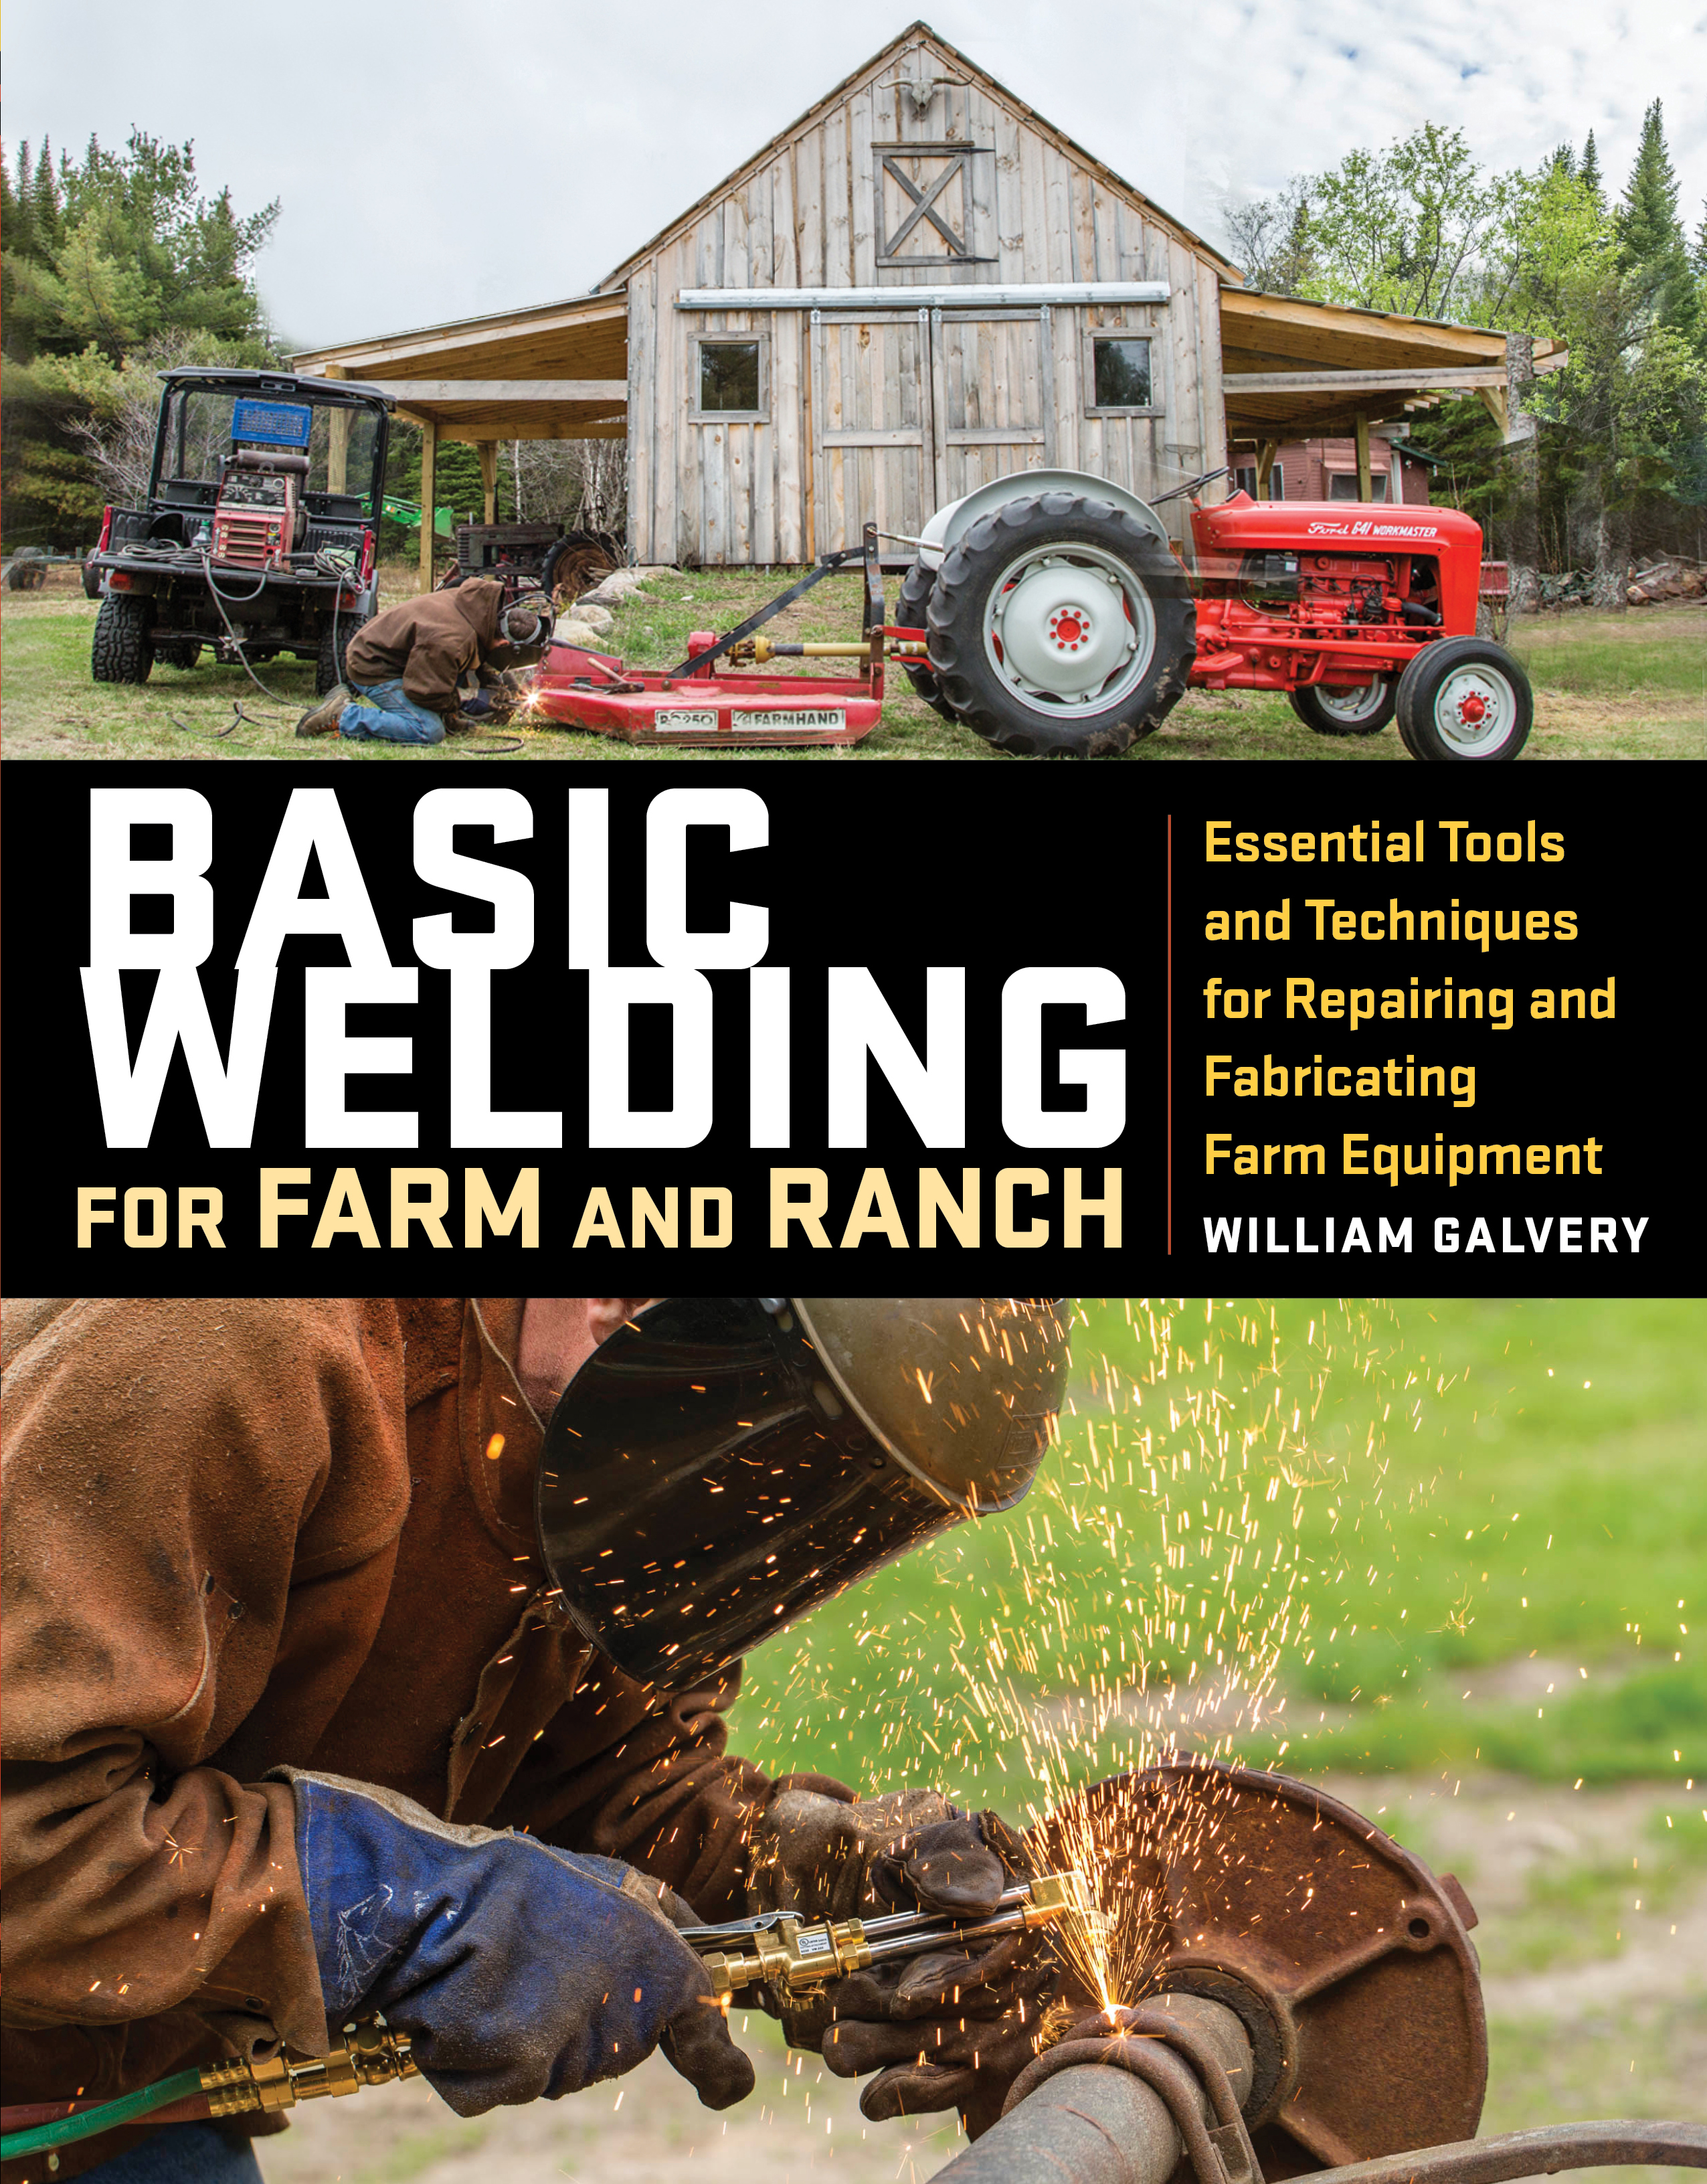 Basic Welding for Farm and Ranch Essential Tools and Techniques for Repairing and Fabricating Farm Equipment - William Galvery